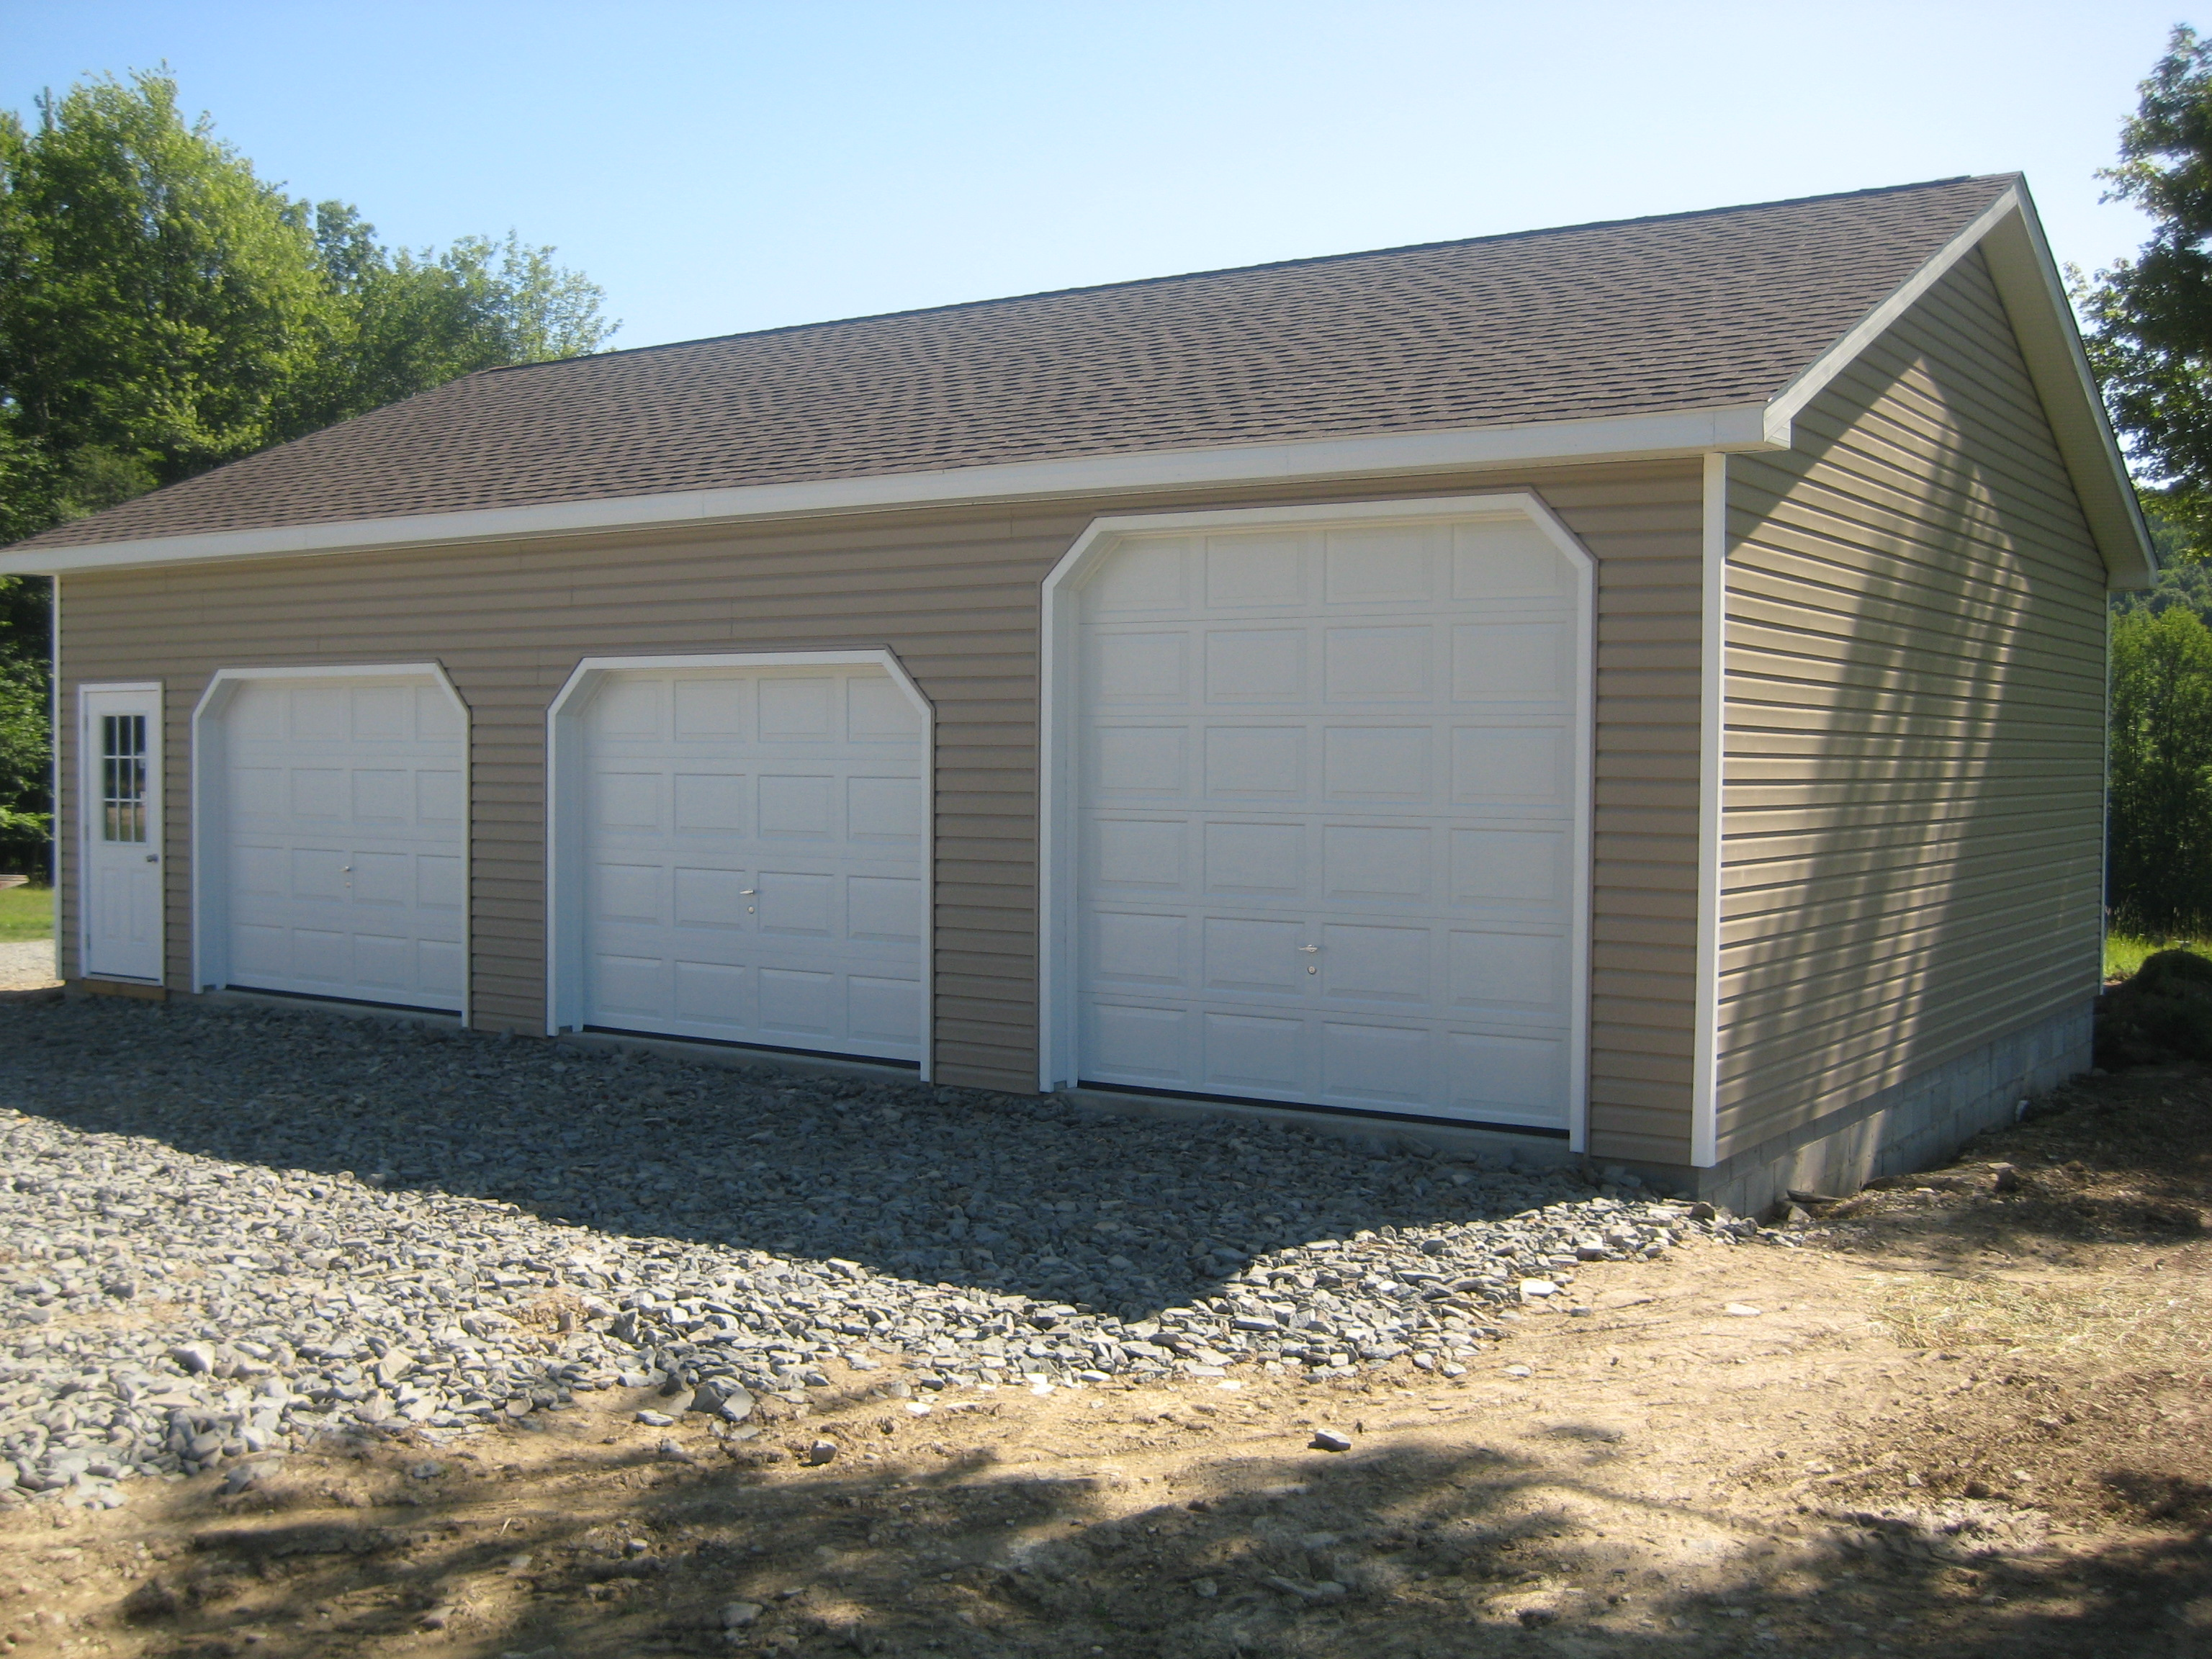 Post frame house spotlats A frame barn plans